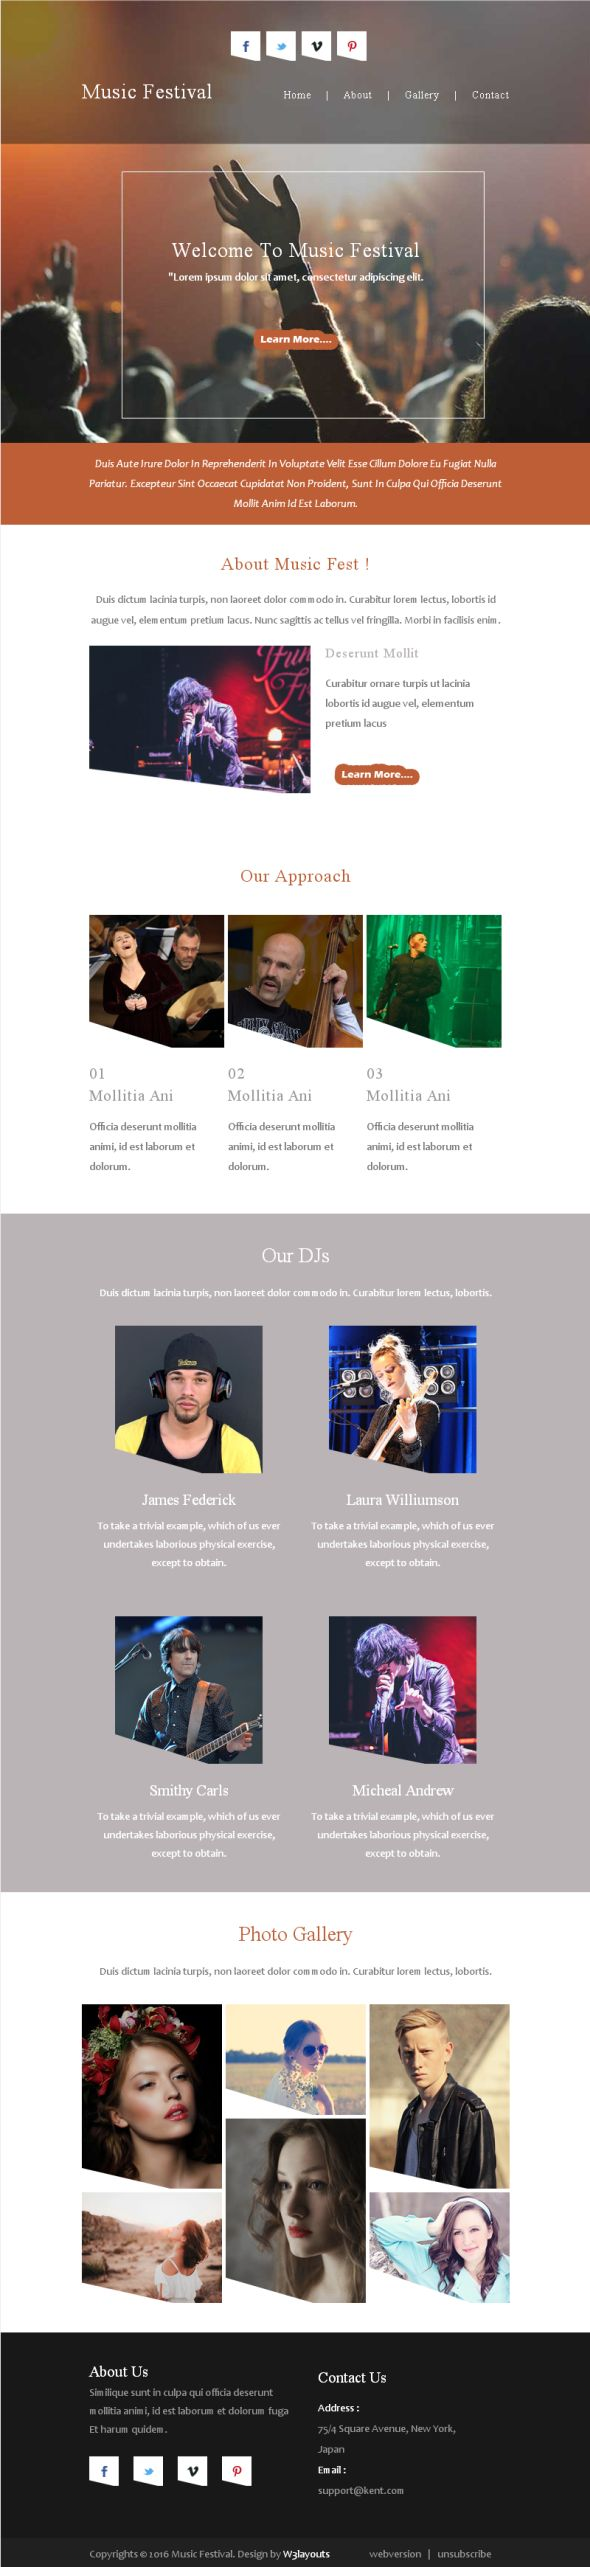 music-festival-newsletter-template